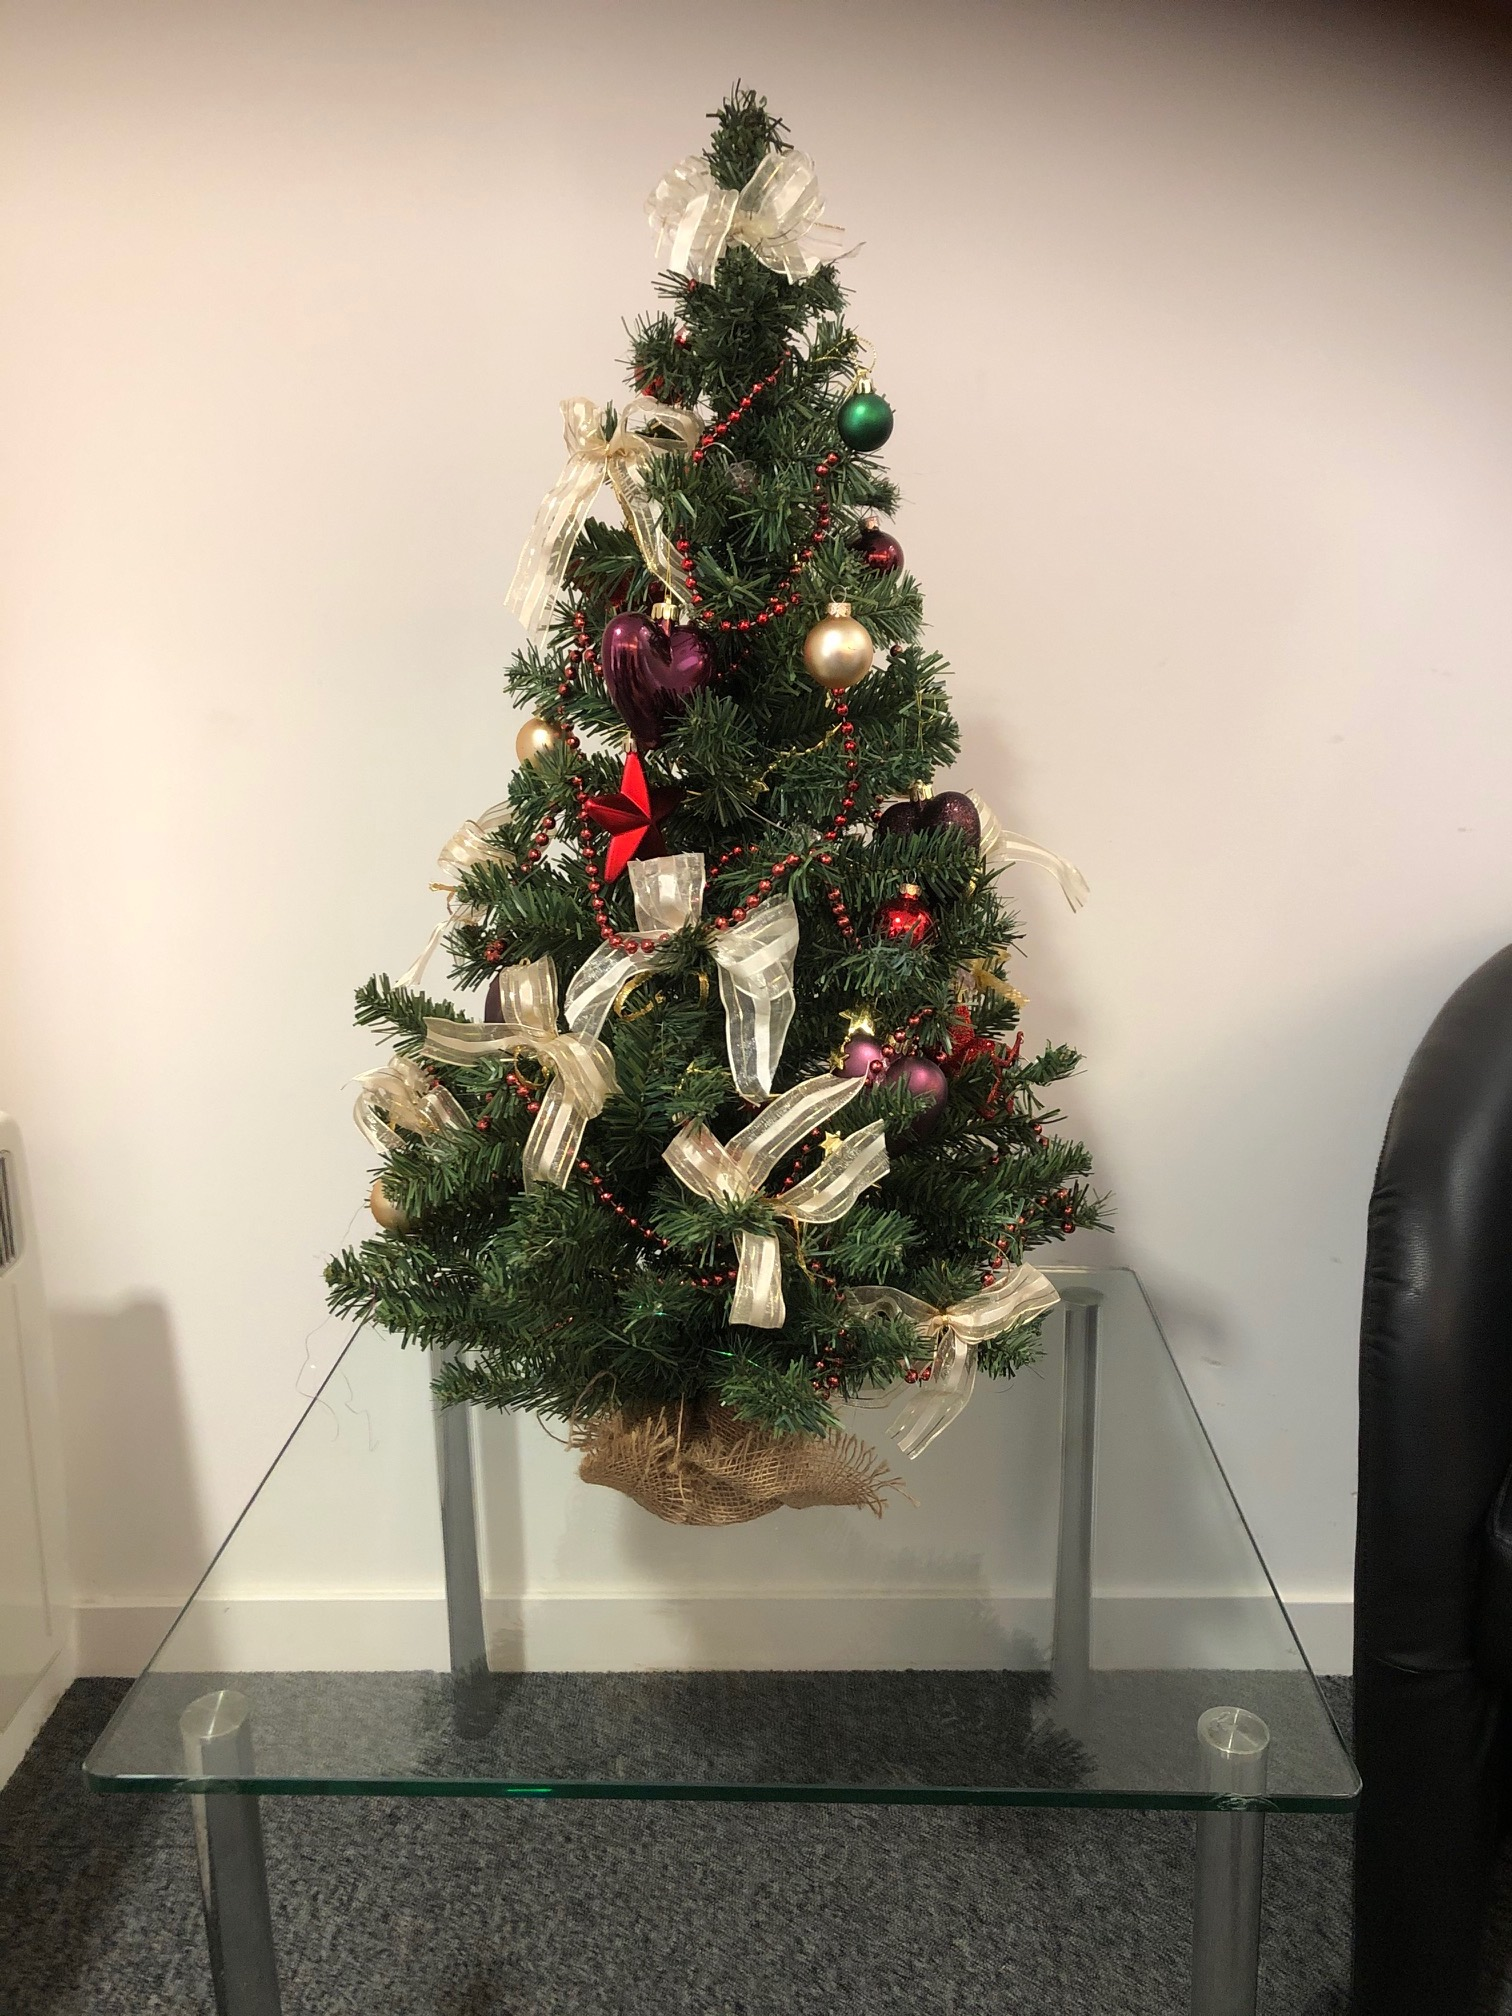 https://www.flower-genie.co.uk/profile/Small Decorated Christmas with Lights - £25